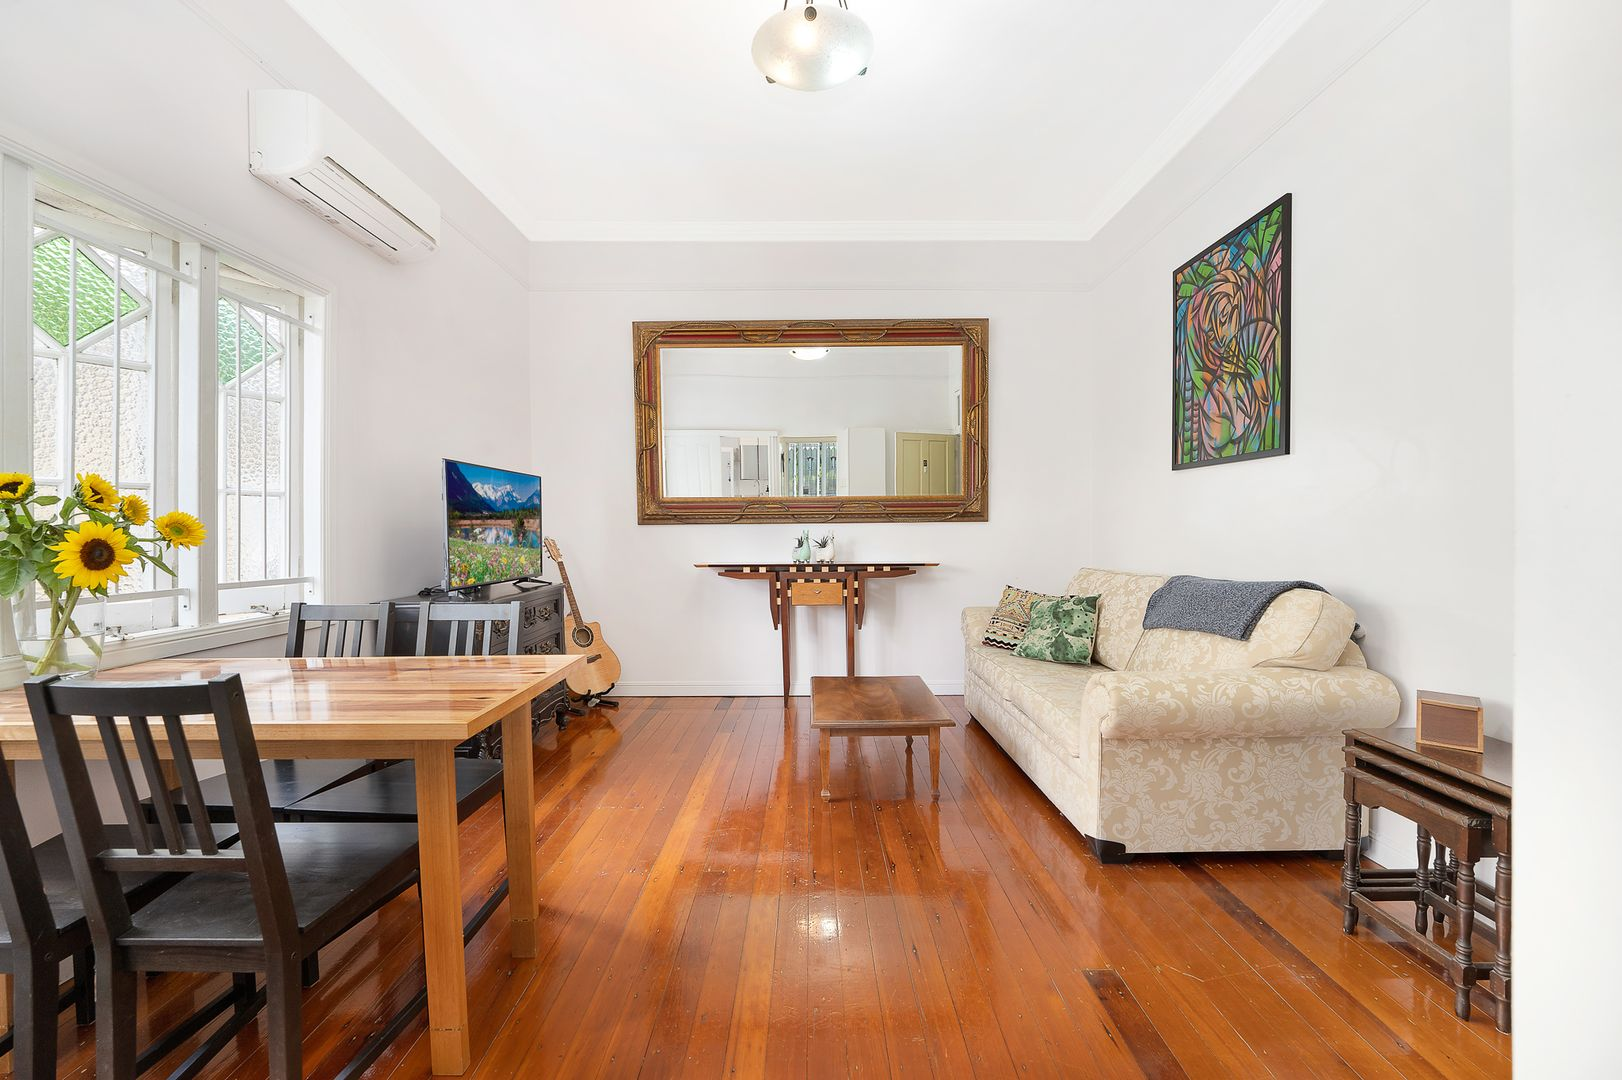 2/447 Bowen Terrace, New Farm QLD 4005, Image 0